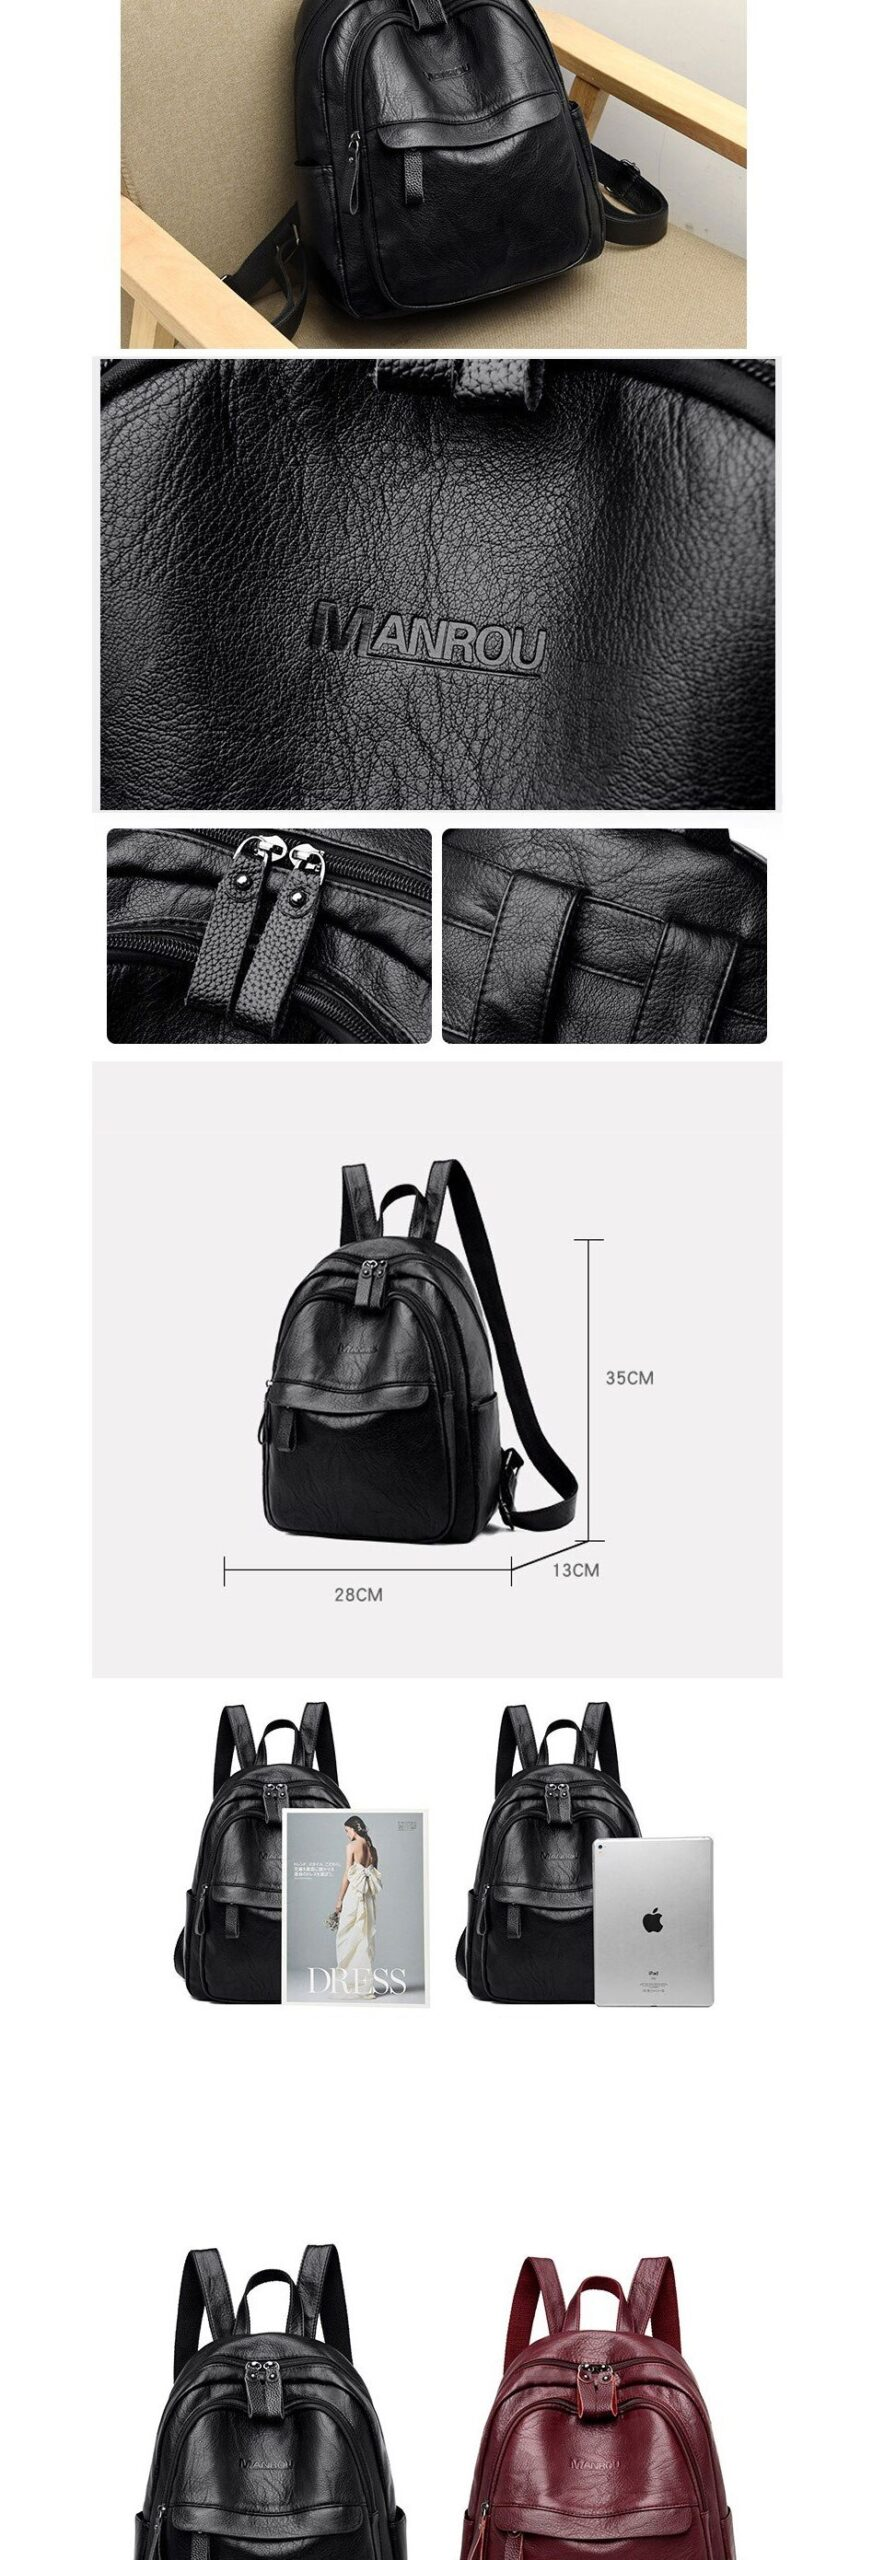 ACELURE Casual Fashion Large School Bags Students Zipper Bag Red Black Soft PU Leather High Quality Backpacks for Teenager Girls